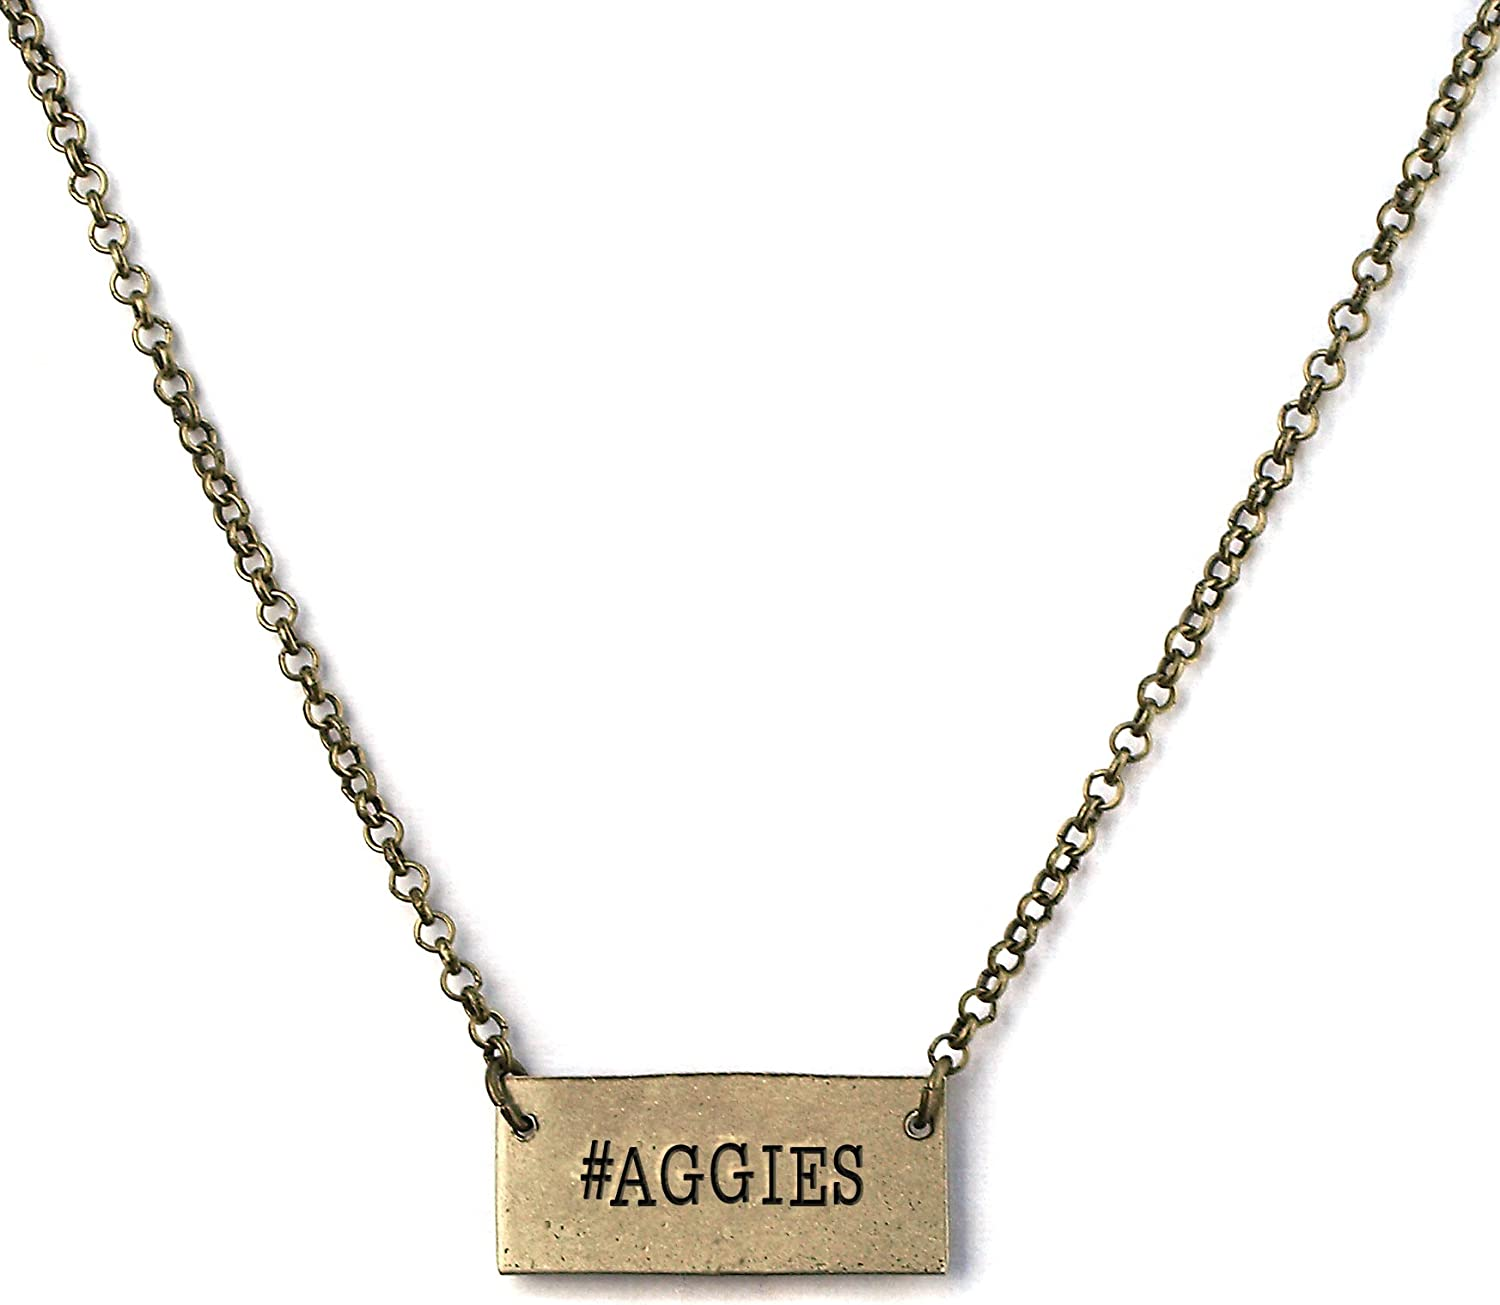 Dilworth Road Aggies Hashtag Hand Stamped Copper Necklace